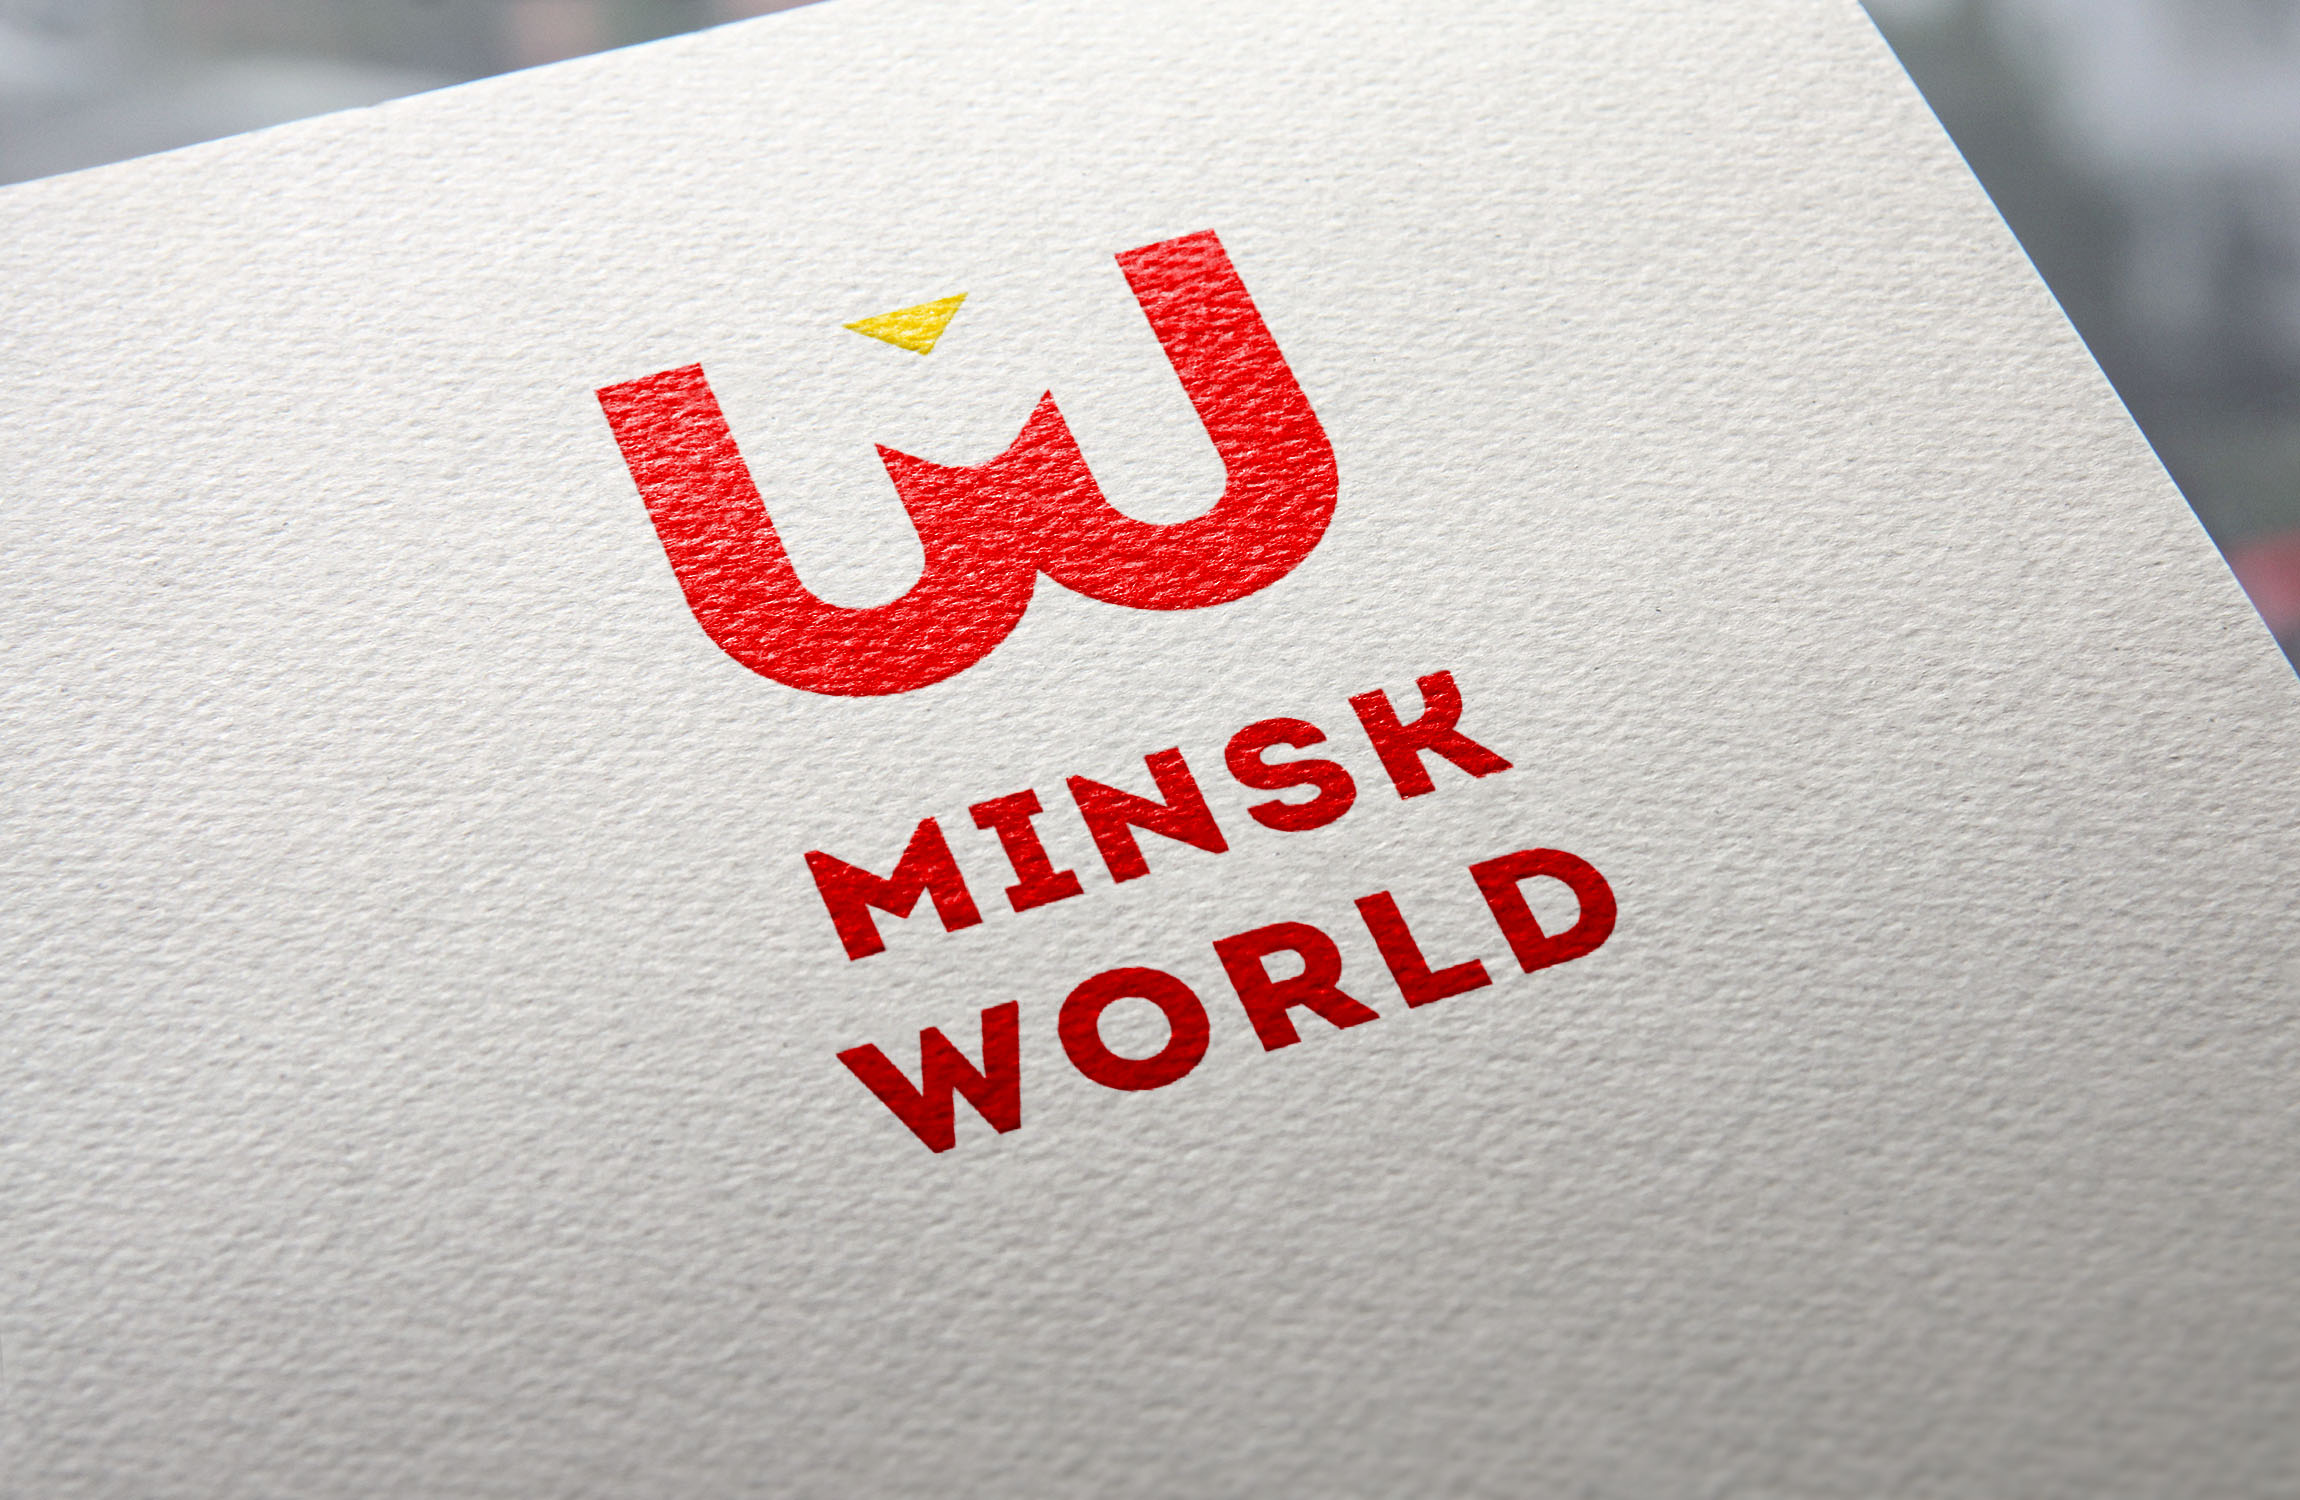 Minsk world 04